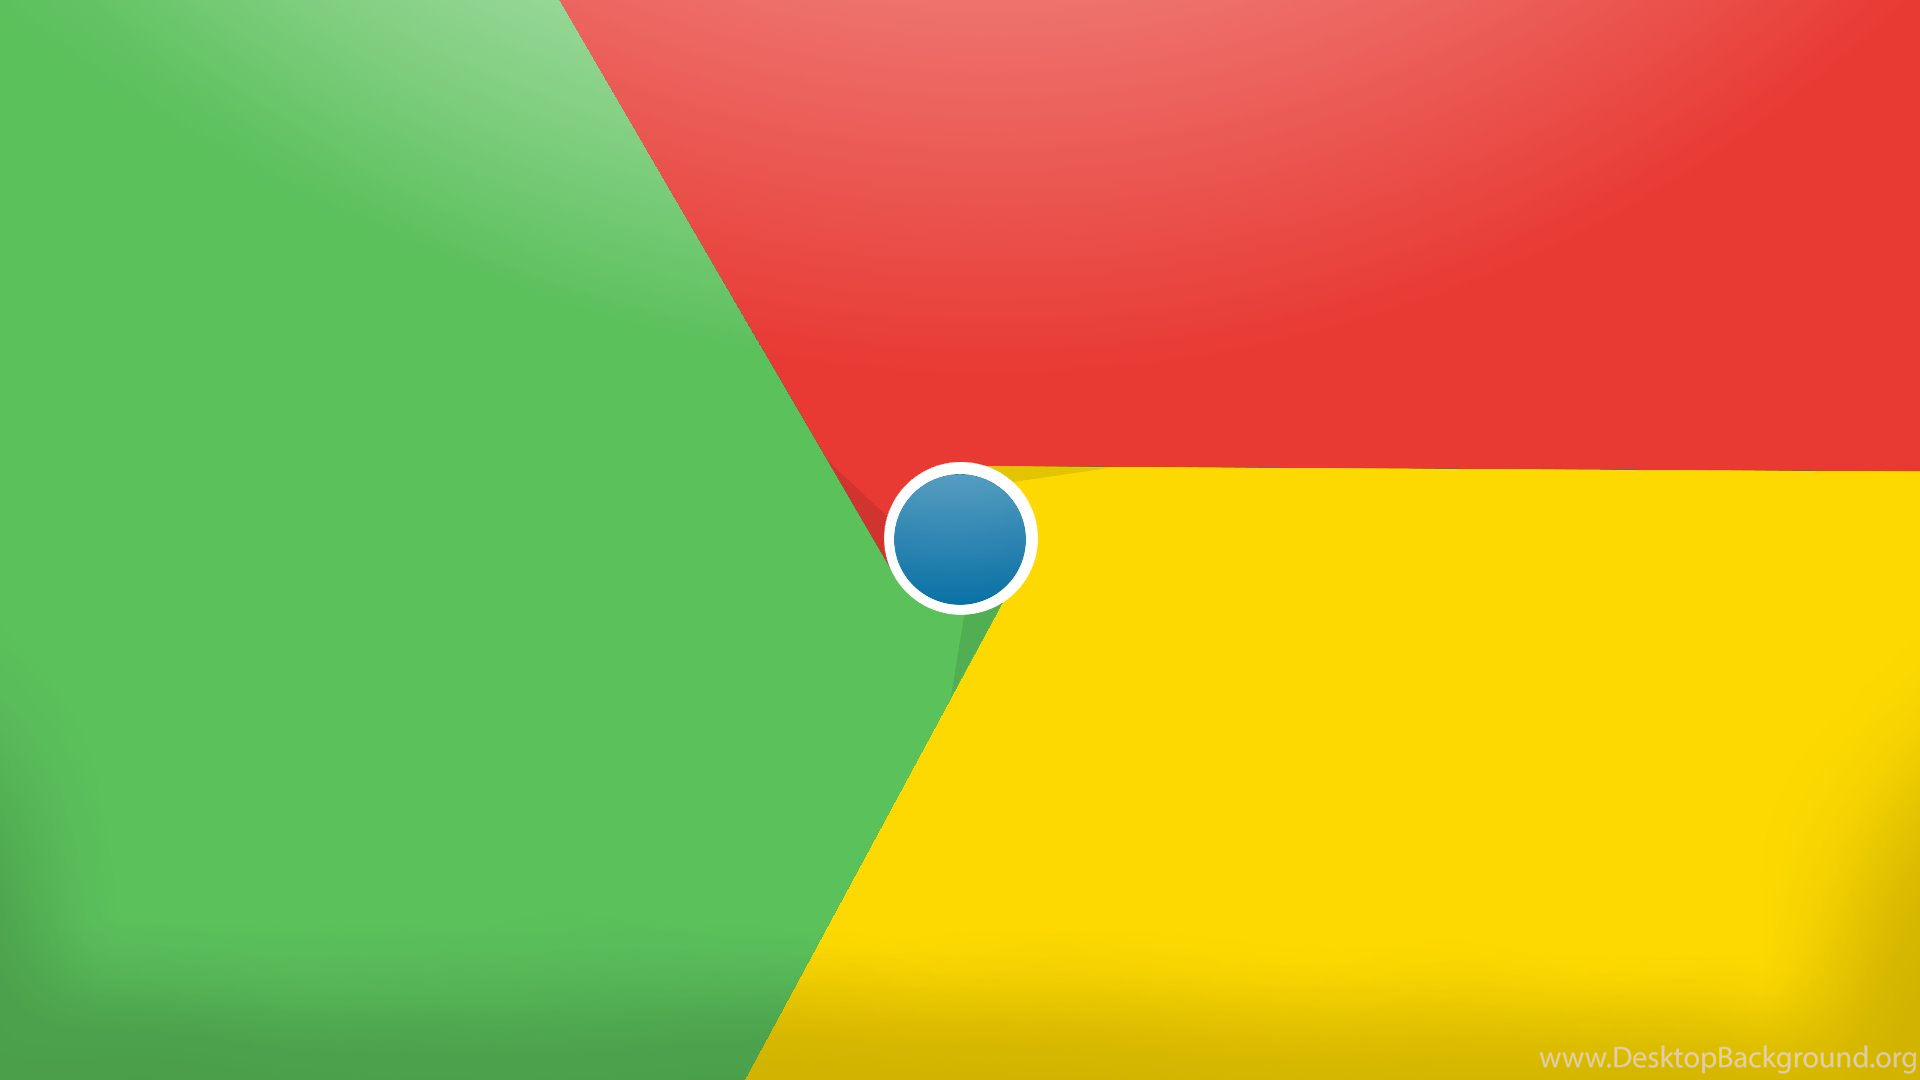 google chrome backgrounds 1920x1080 1080p wallpapers hd wallpapers